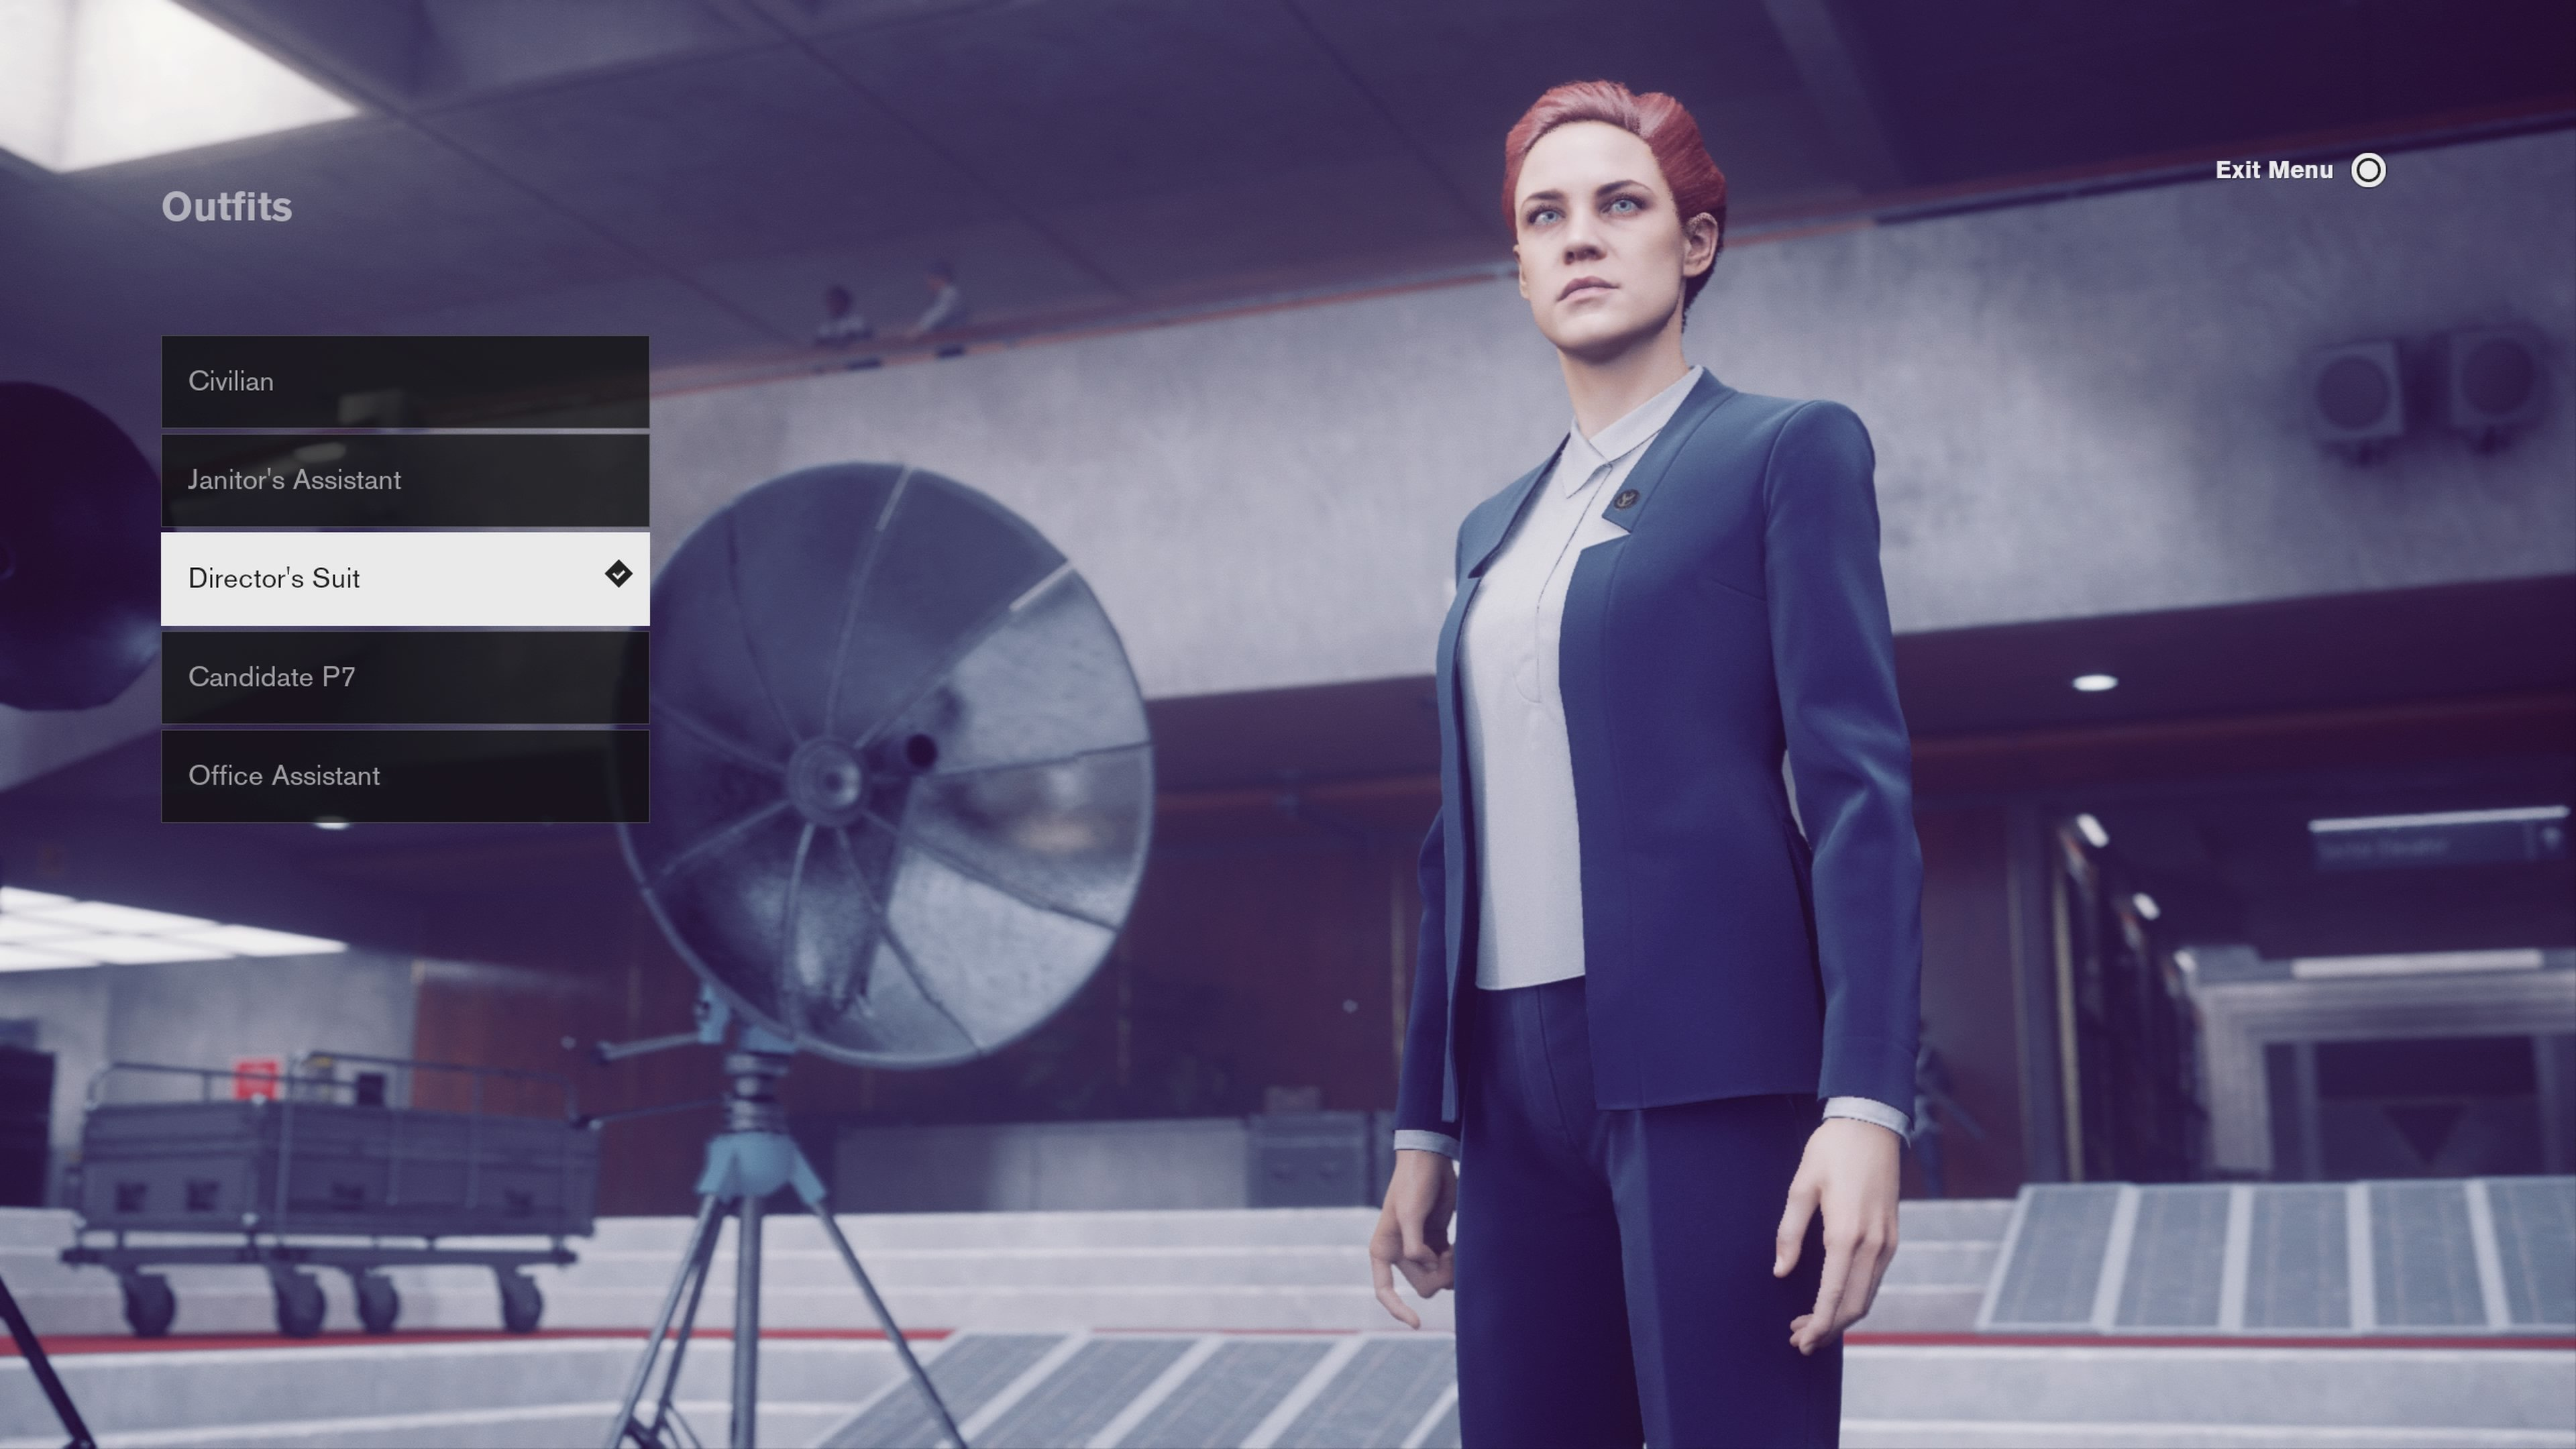 Director's Suit Outfit in Control - how to unlock outfits